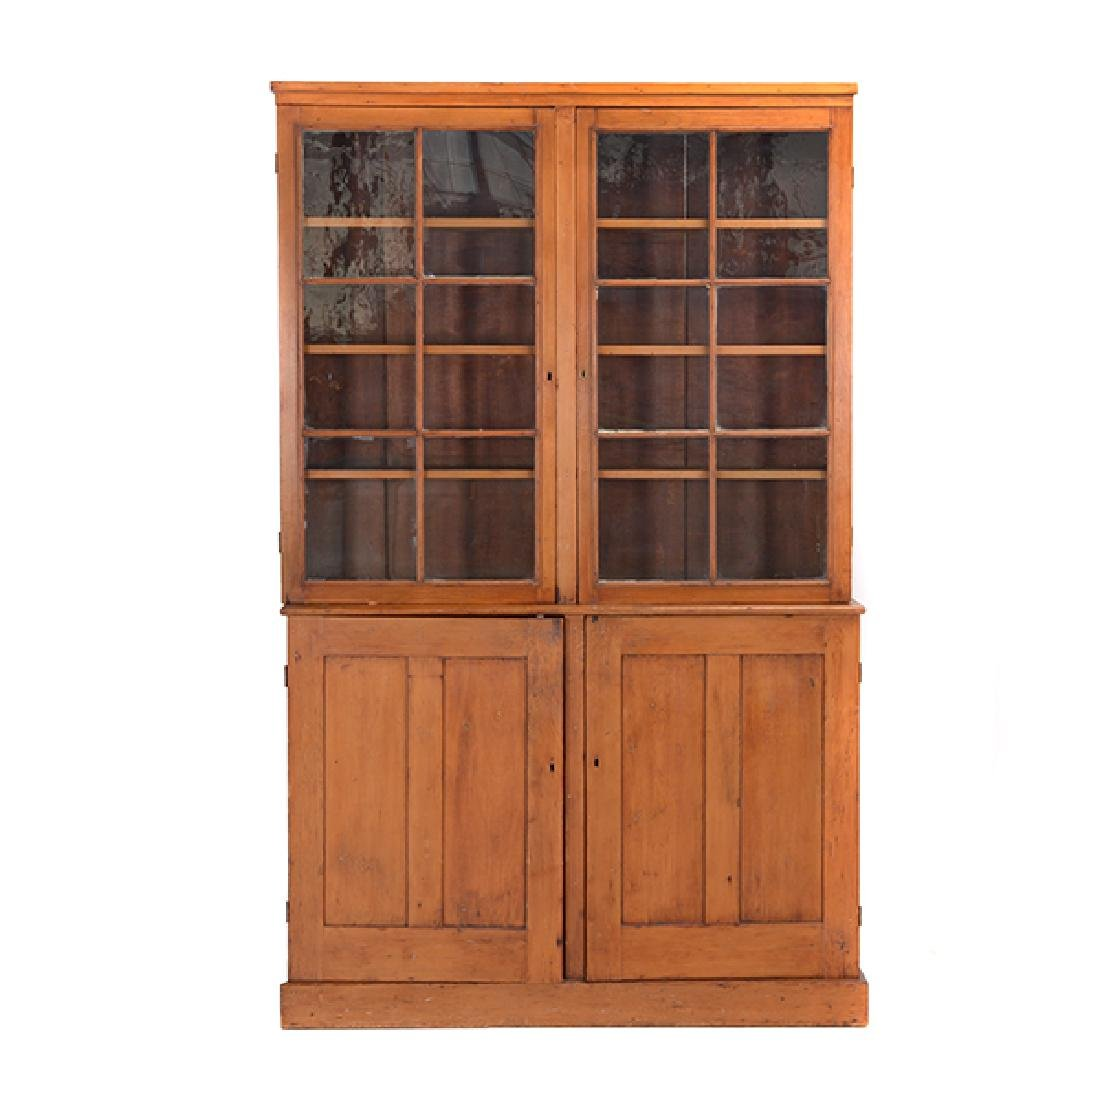 American Federal Maple, Pine, and Walnut Cabinet